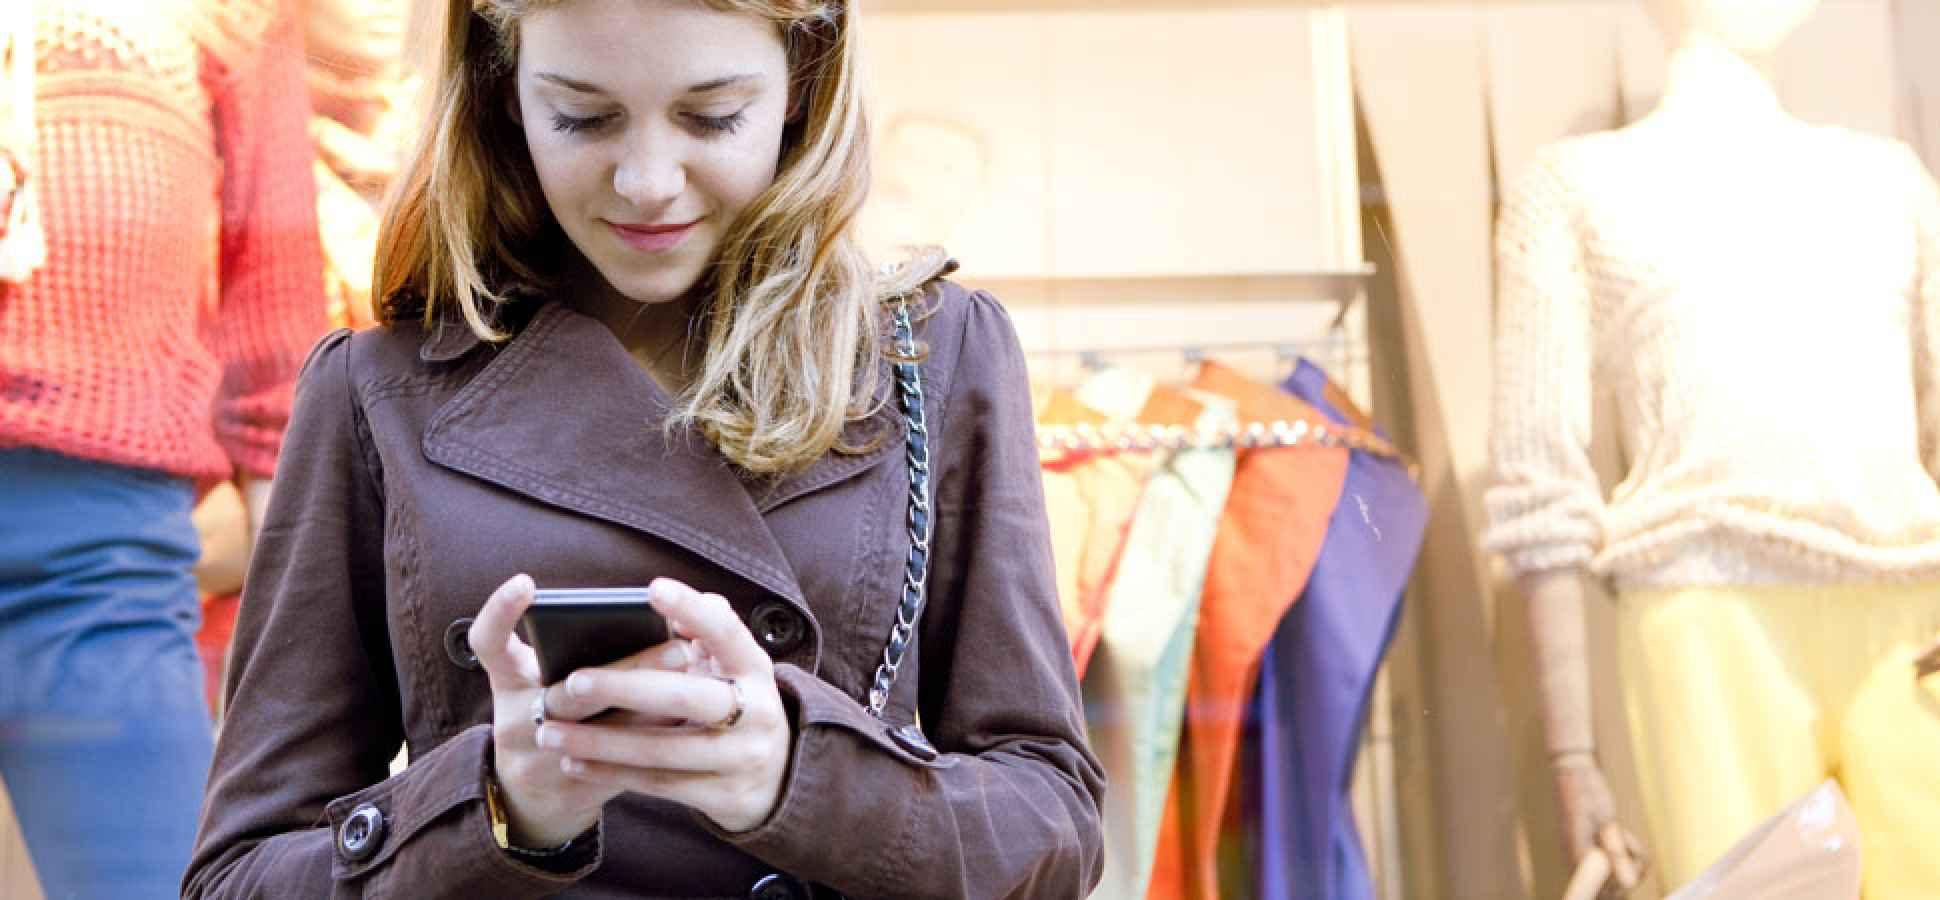 Why No One's Cracked Mobile E-Commerce Yet